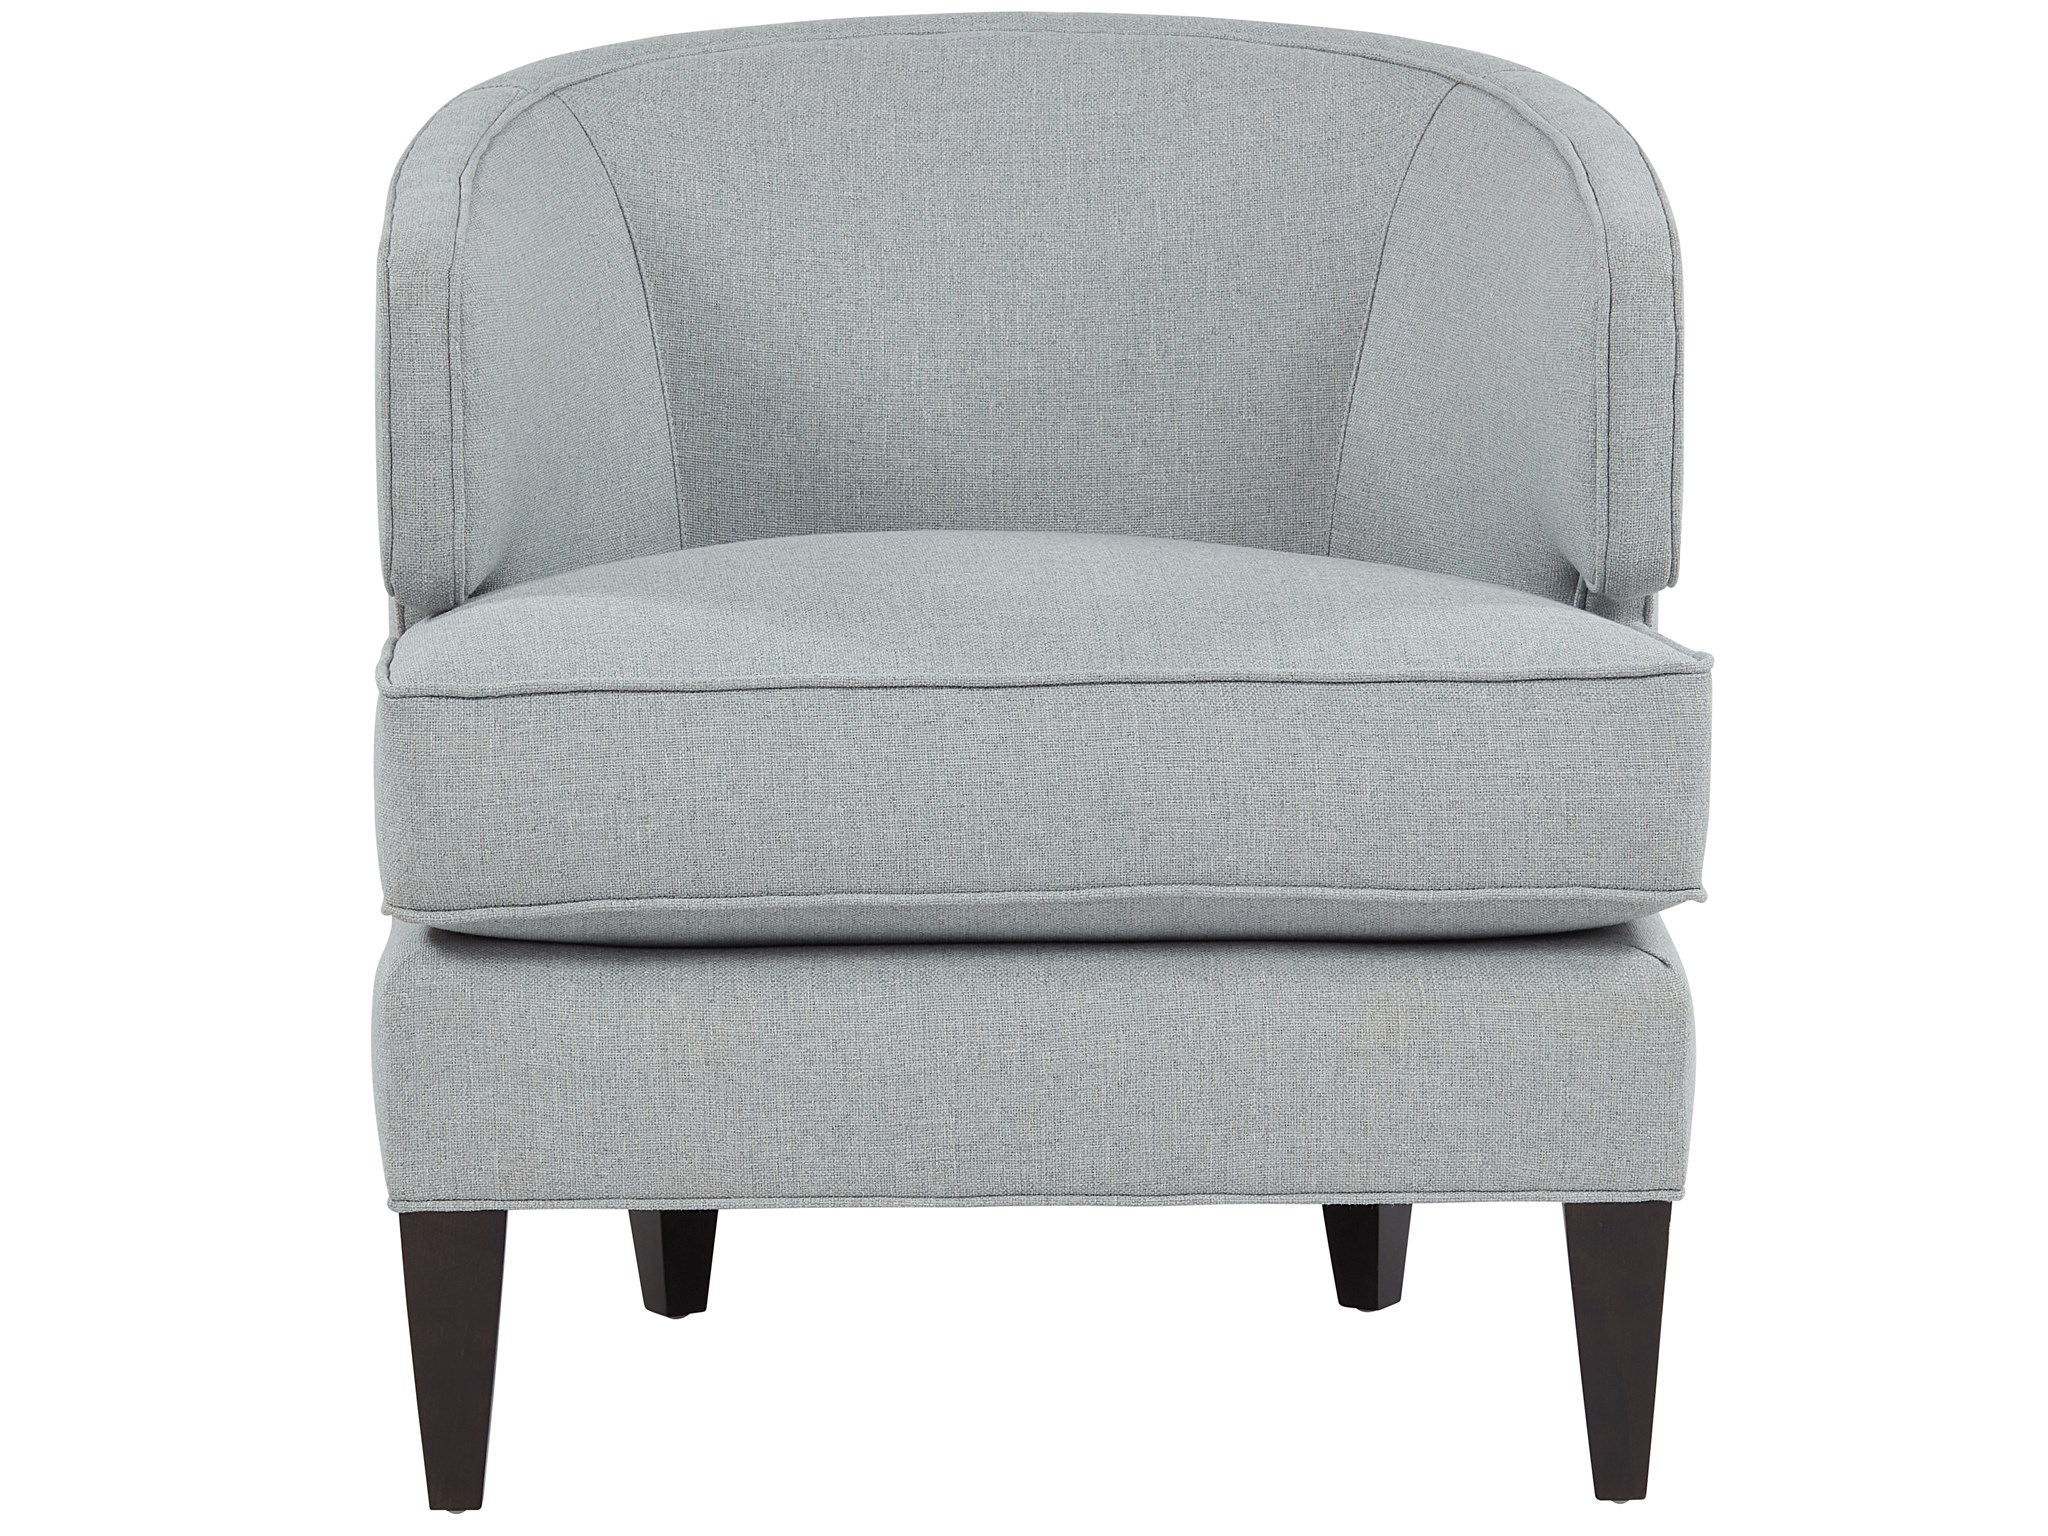 Jolie Chair - Special Order